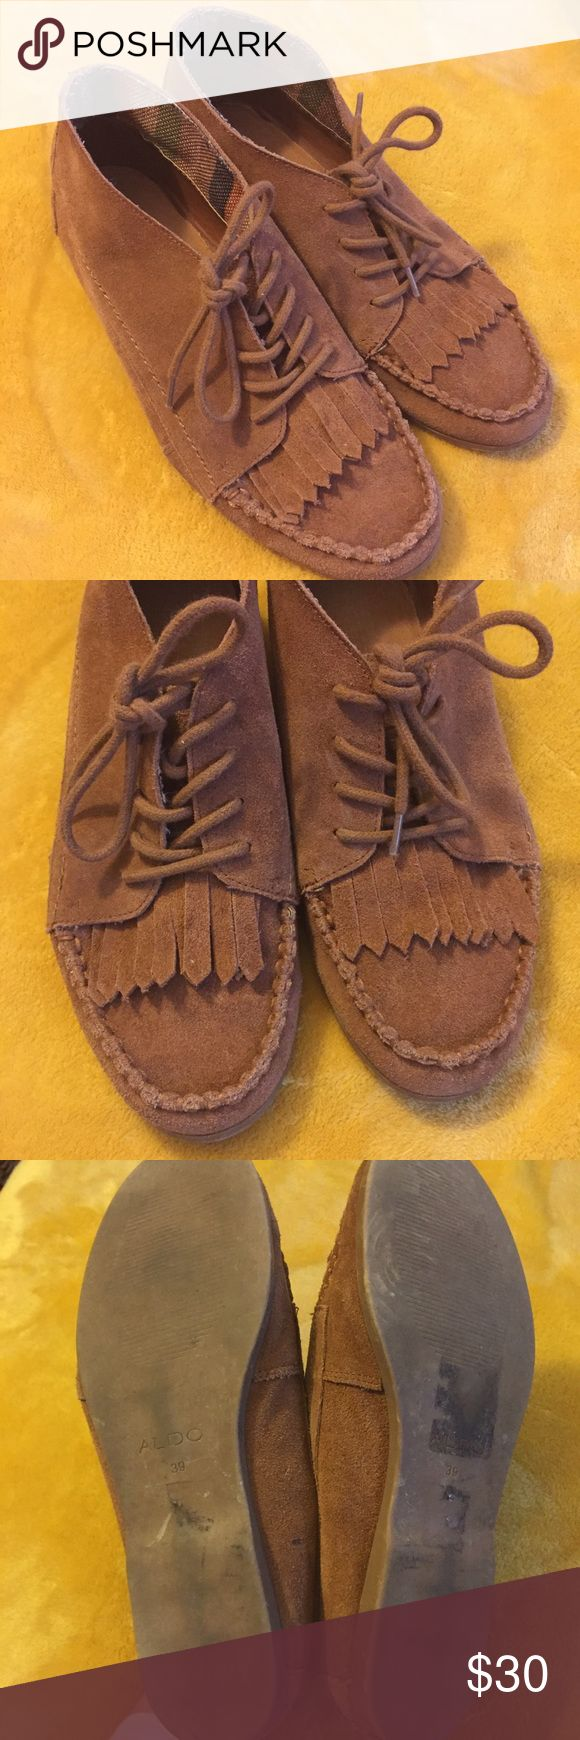 Vintage suede Aldo hipster lace-up moccasins Vintage suede Aldo hipster lace-up moccasins, super cute! Good vintage condition. Bottom is labeled size 39 (fits a modern size 8) Vintage Shoes Moccasins